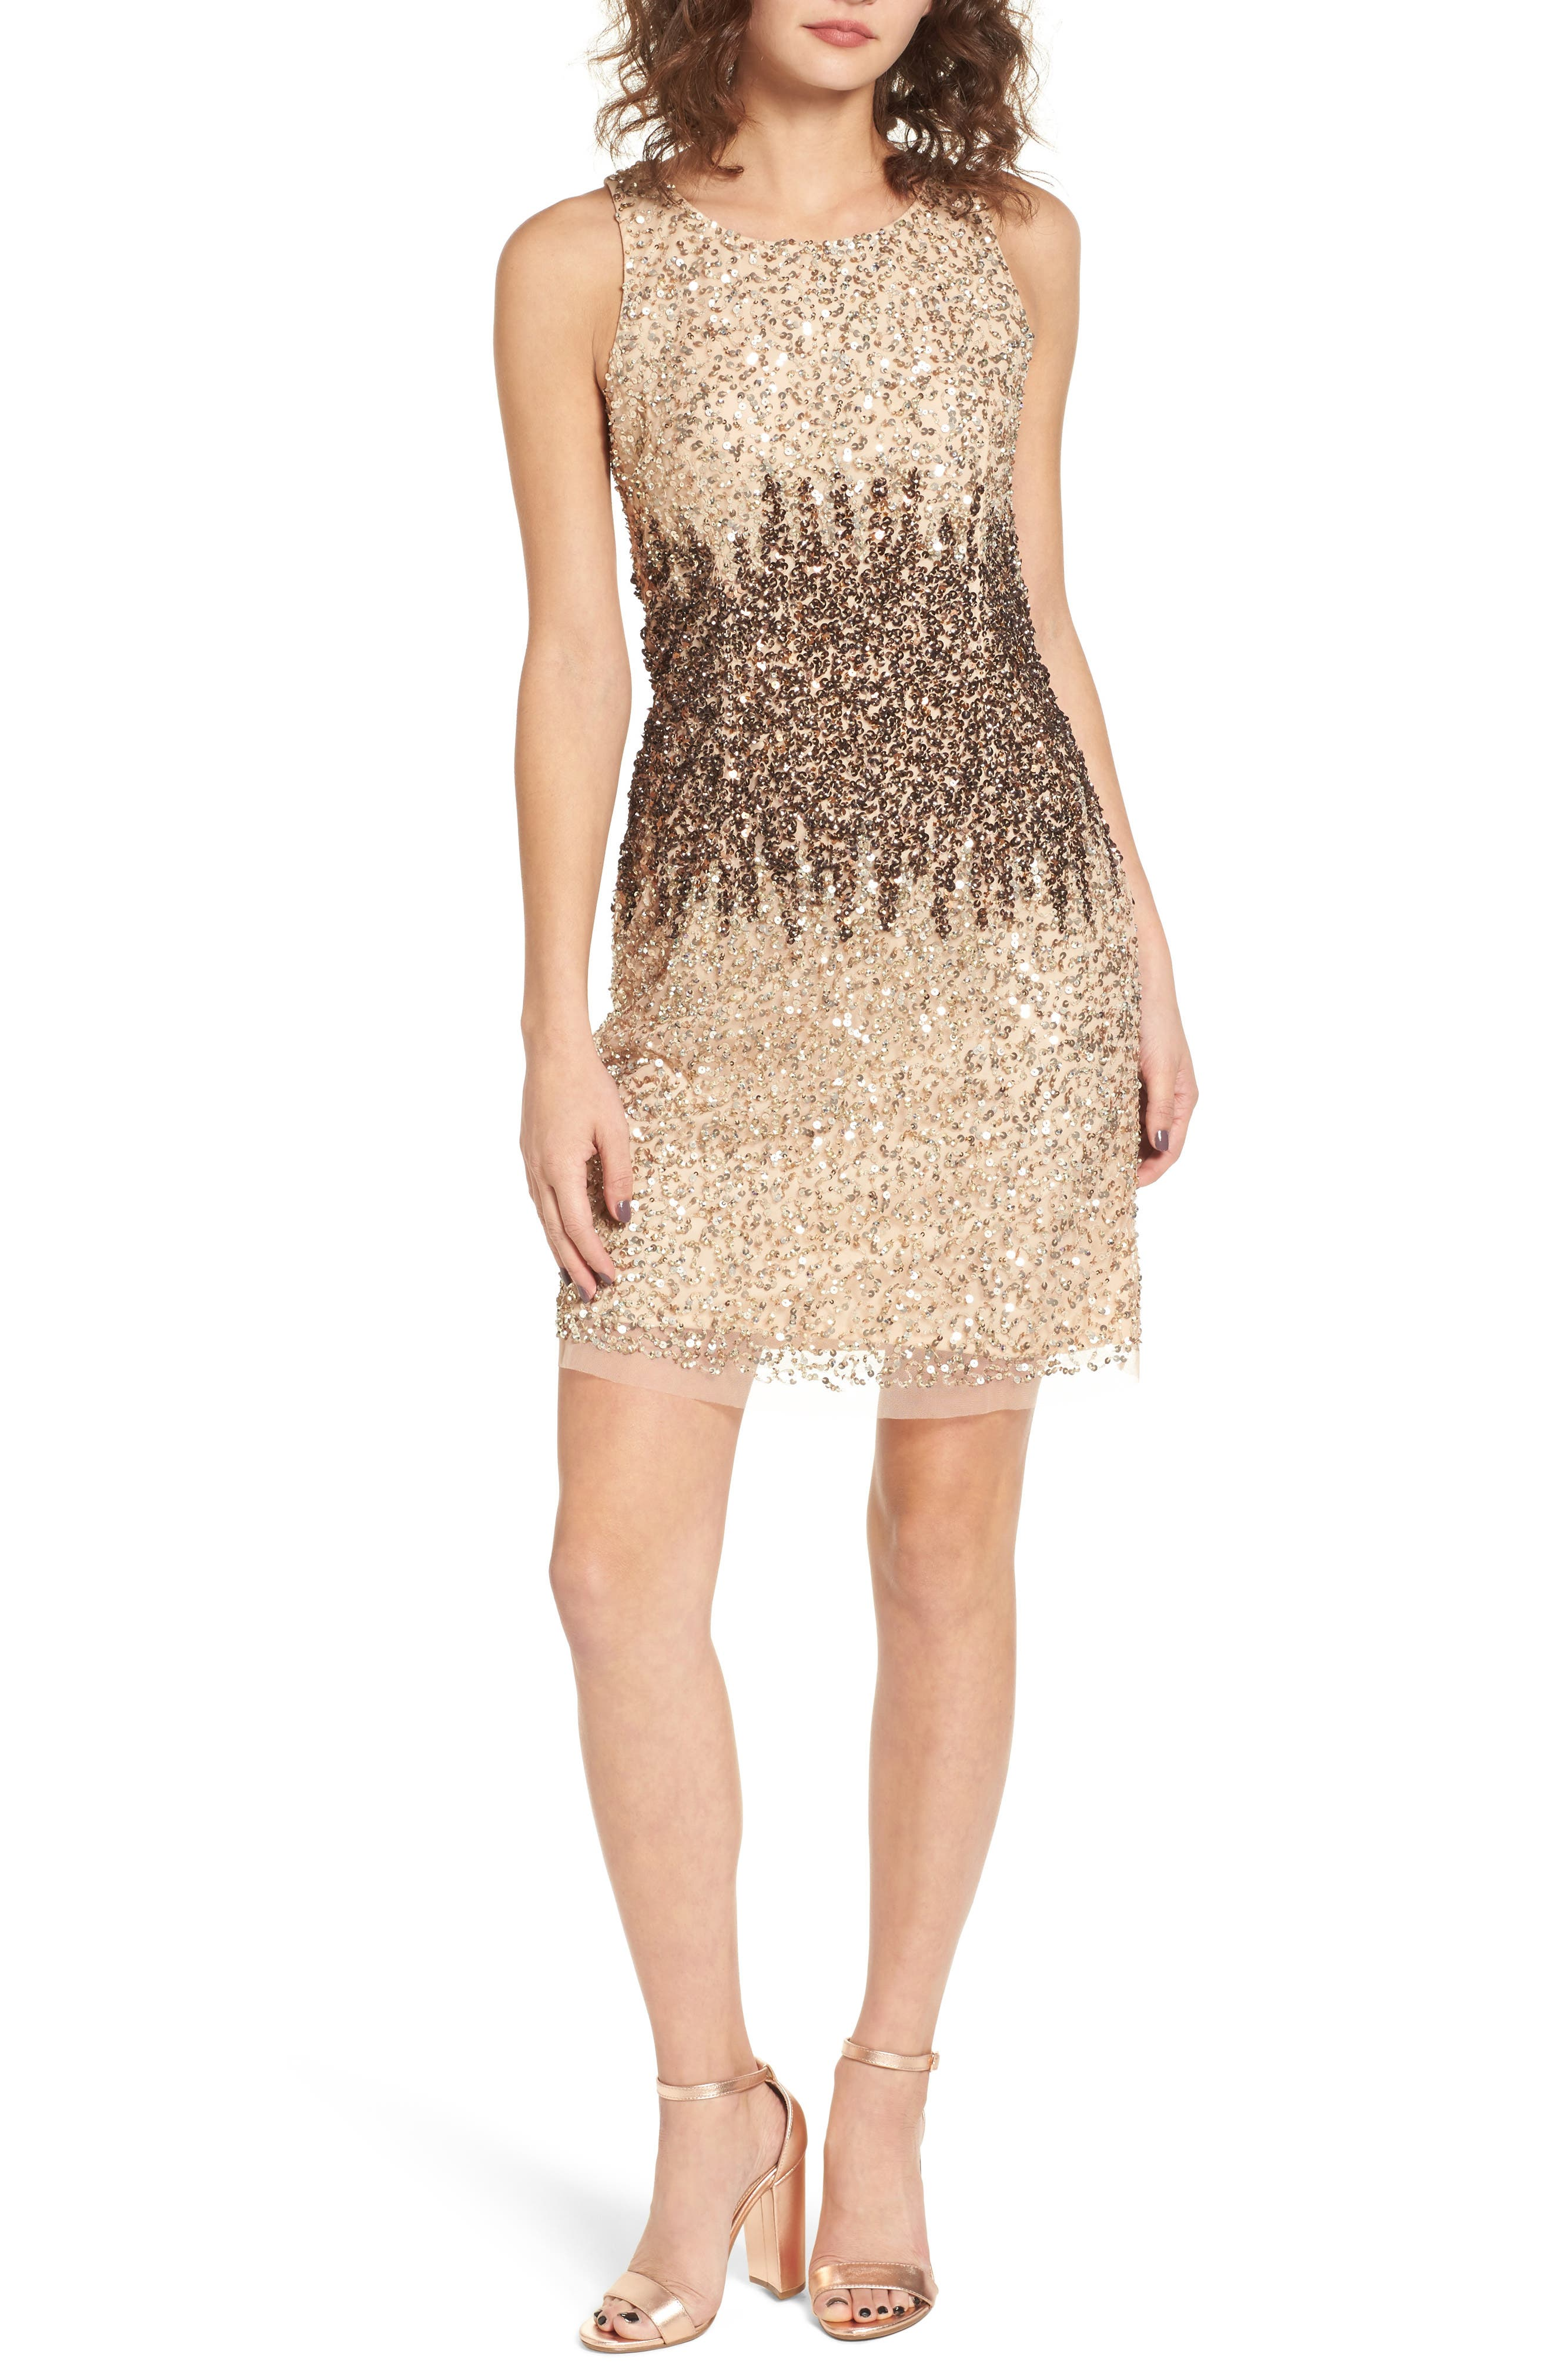 Sequins and Champagne Dress,                             Main thumbnail 1, color,                             Beige